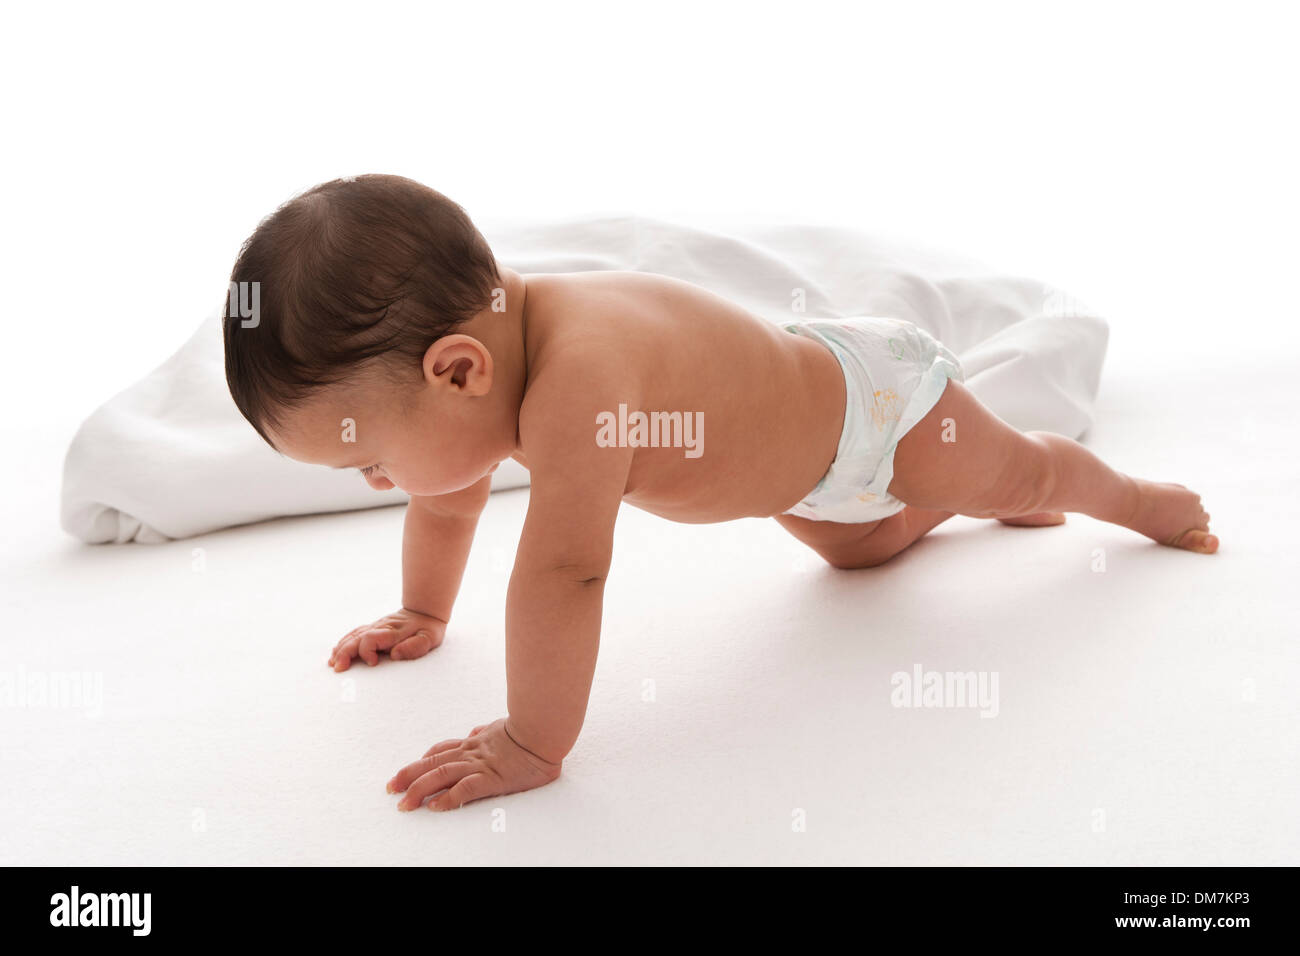 Baby boy is performing push ups on white background - Stock Image